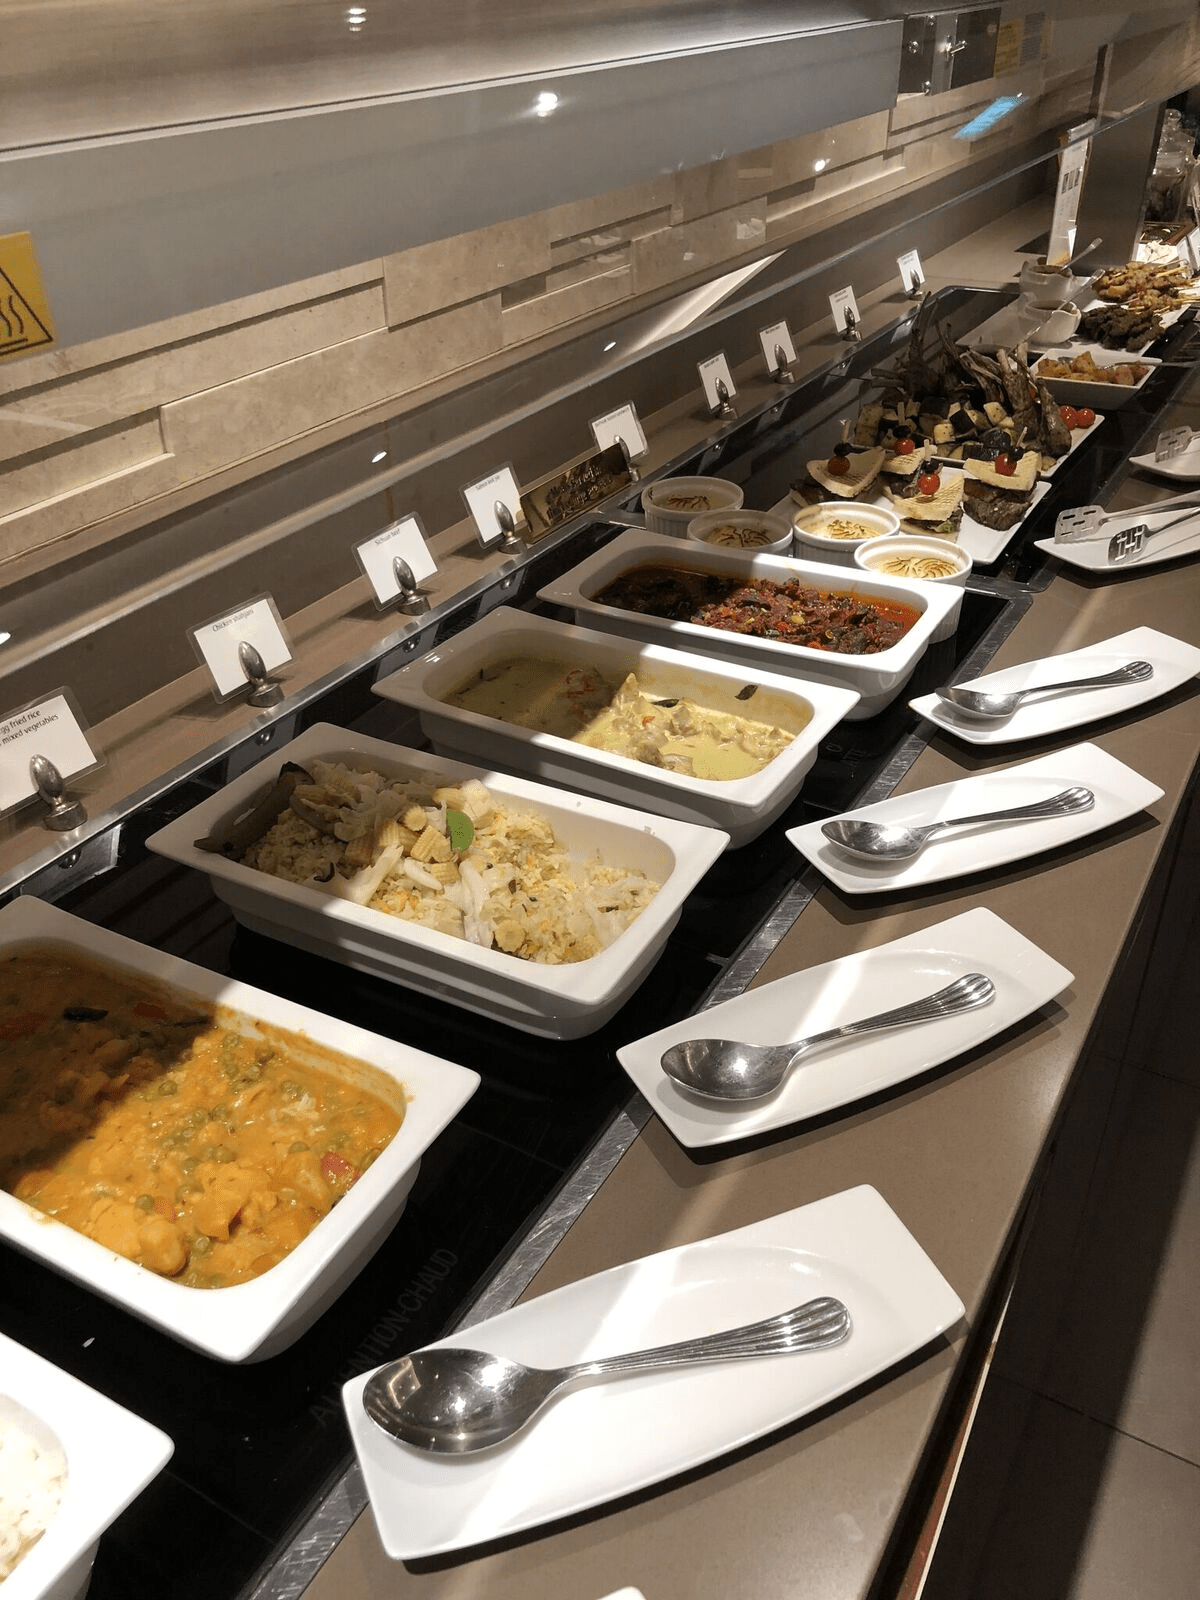 Review: Emirates (777-300ER) Biz From Singapore to Accra